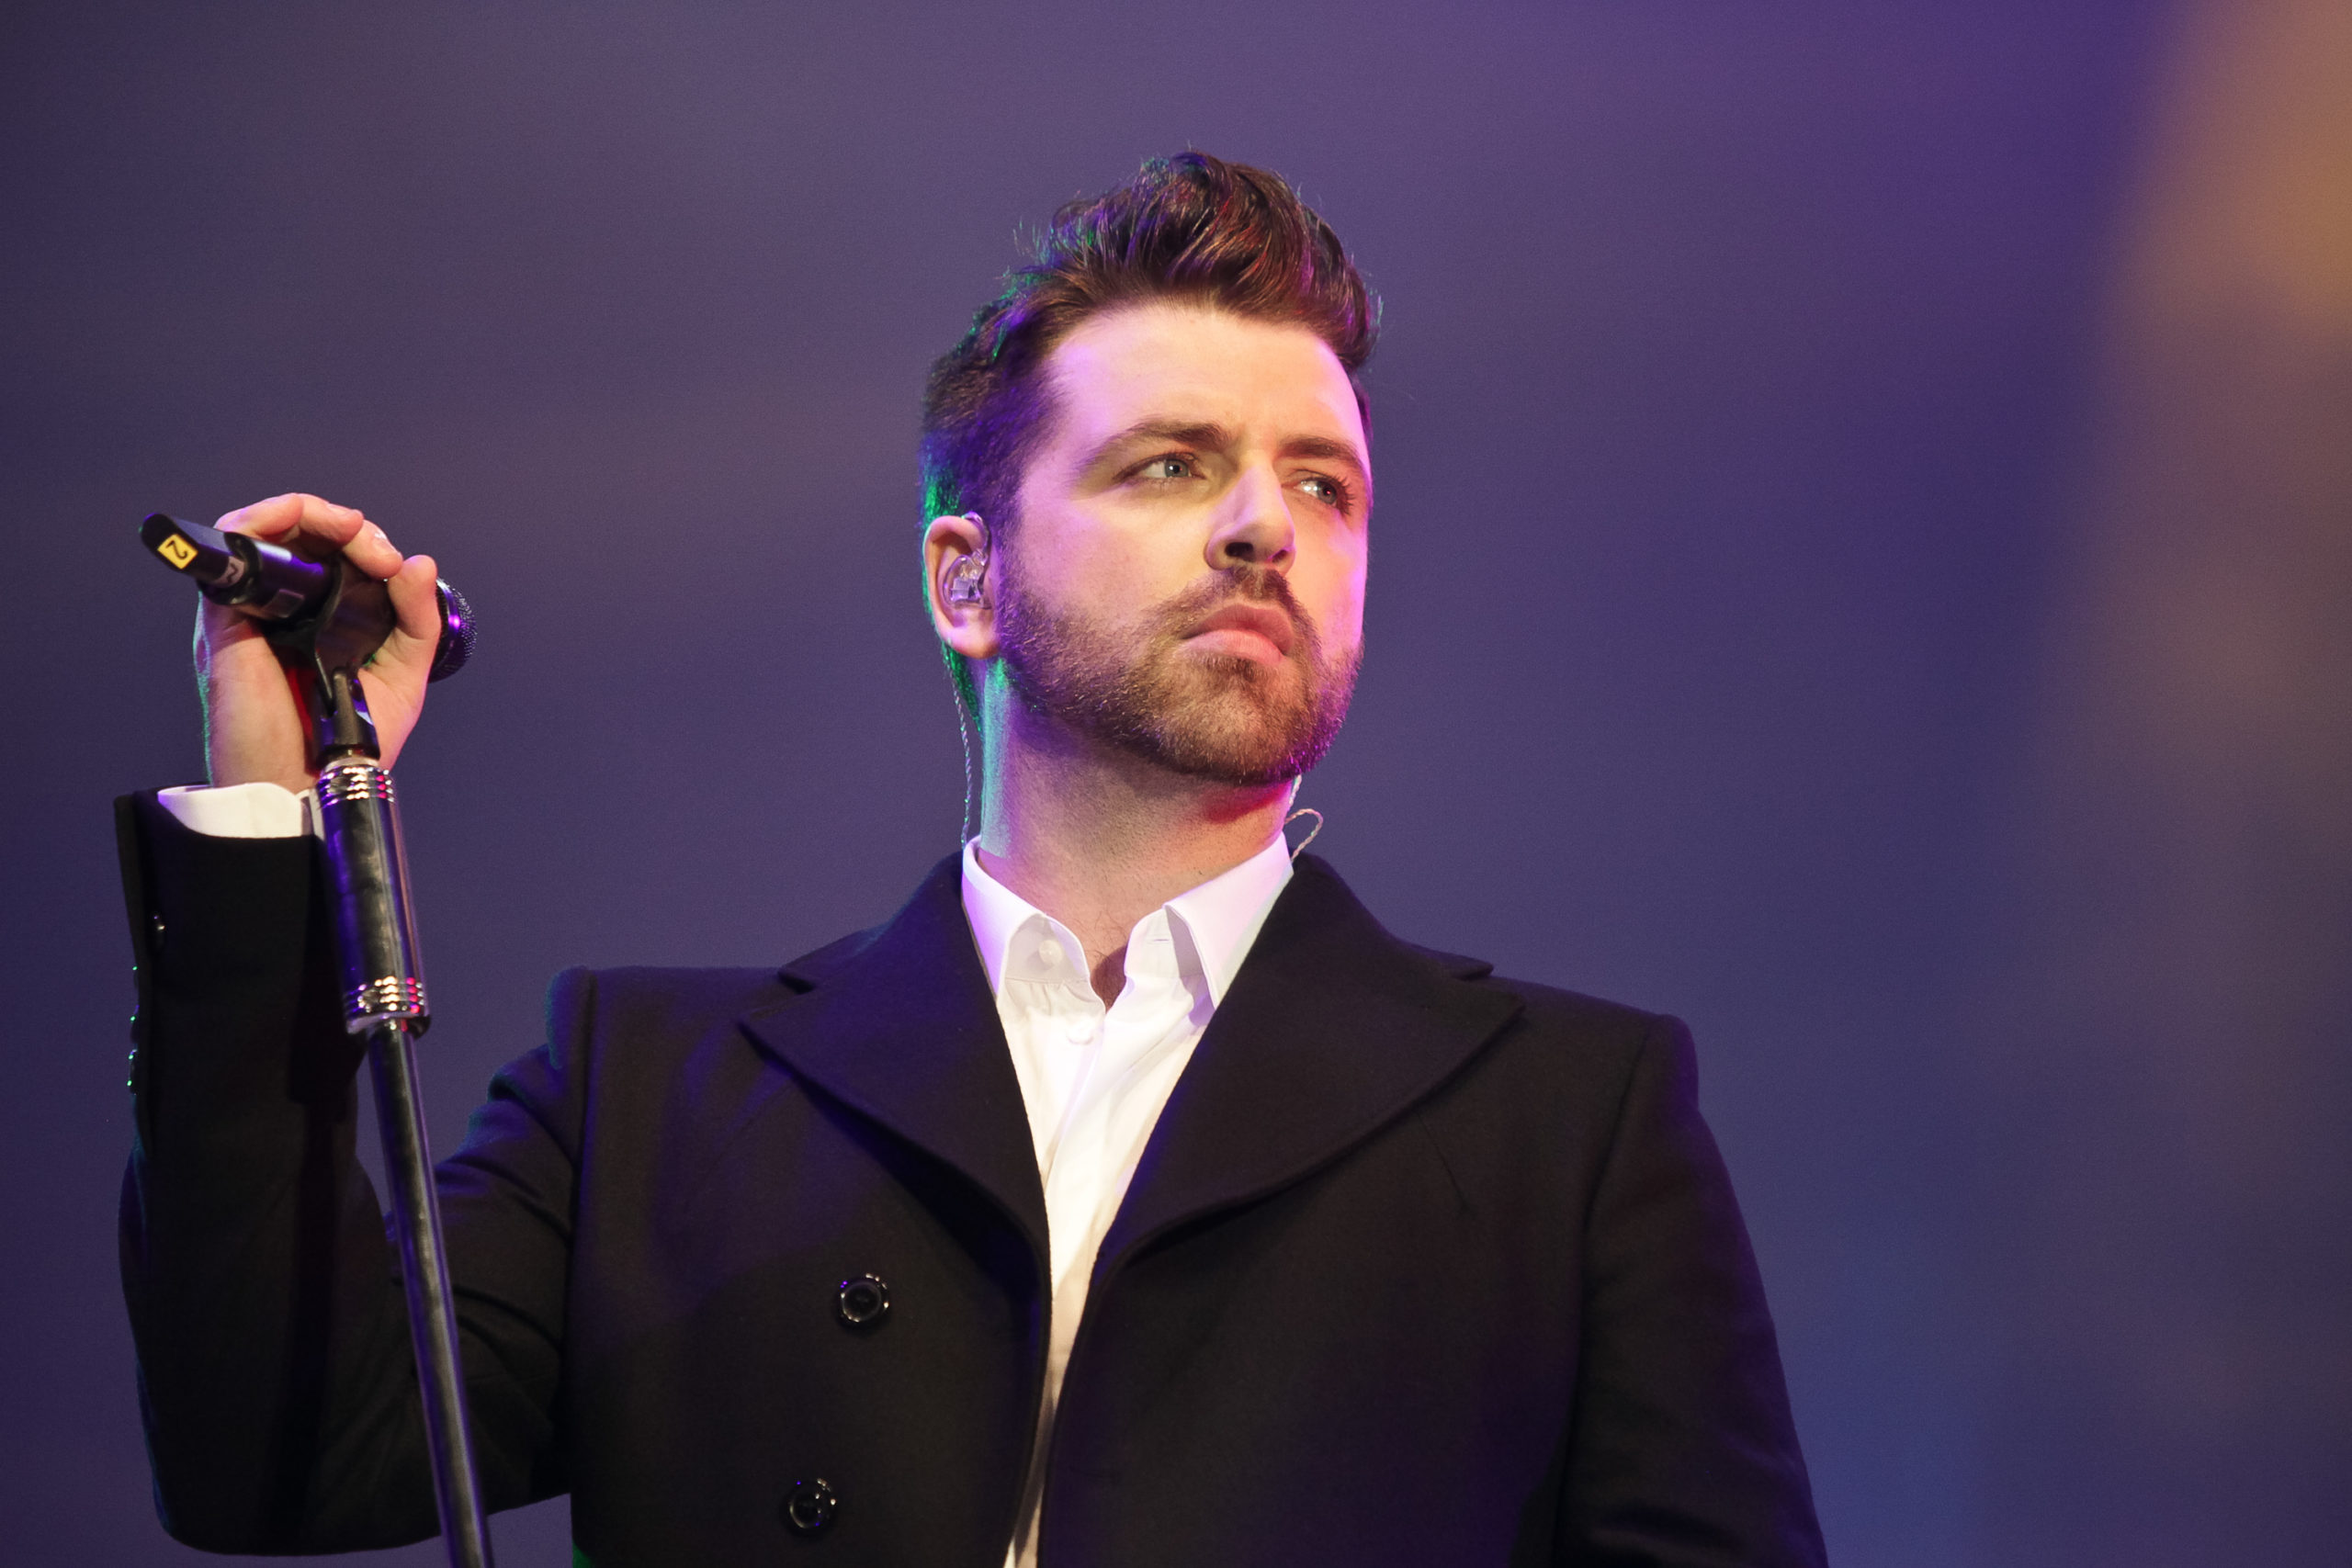 Strictly Come Dancing eyeing up Mark Feehily for show's first same-sex couple which only took 16 years